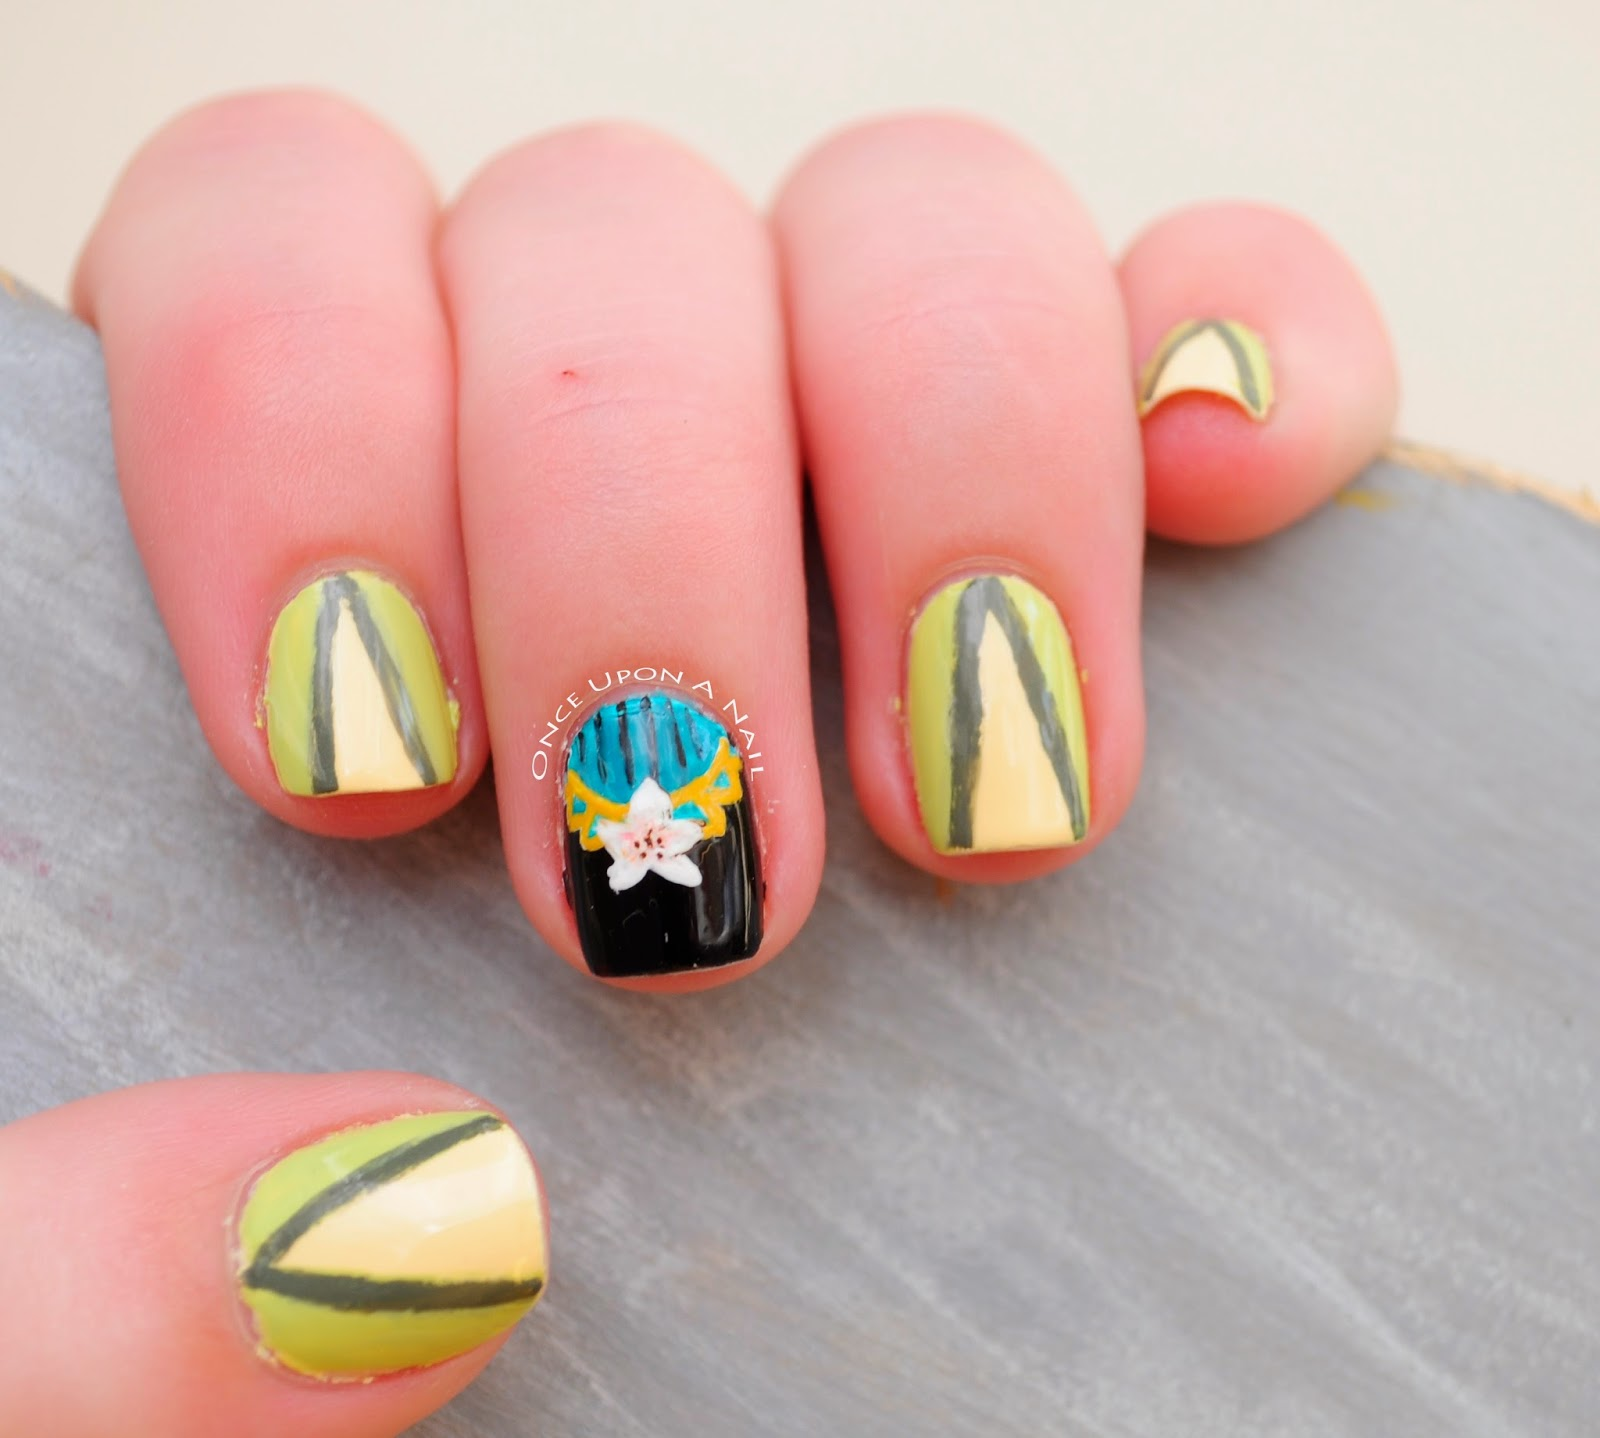 Mulan Inspired Nails: Once Upon A Nail: Disney Princess Challenge #7: Mulan